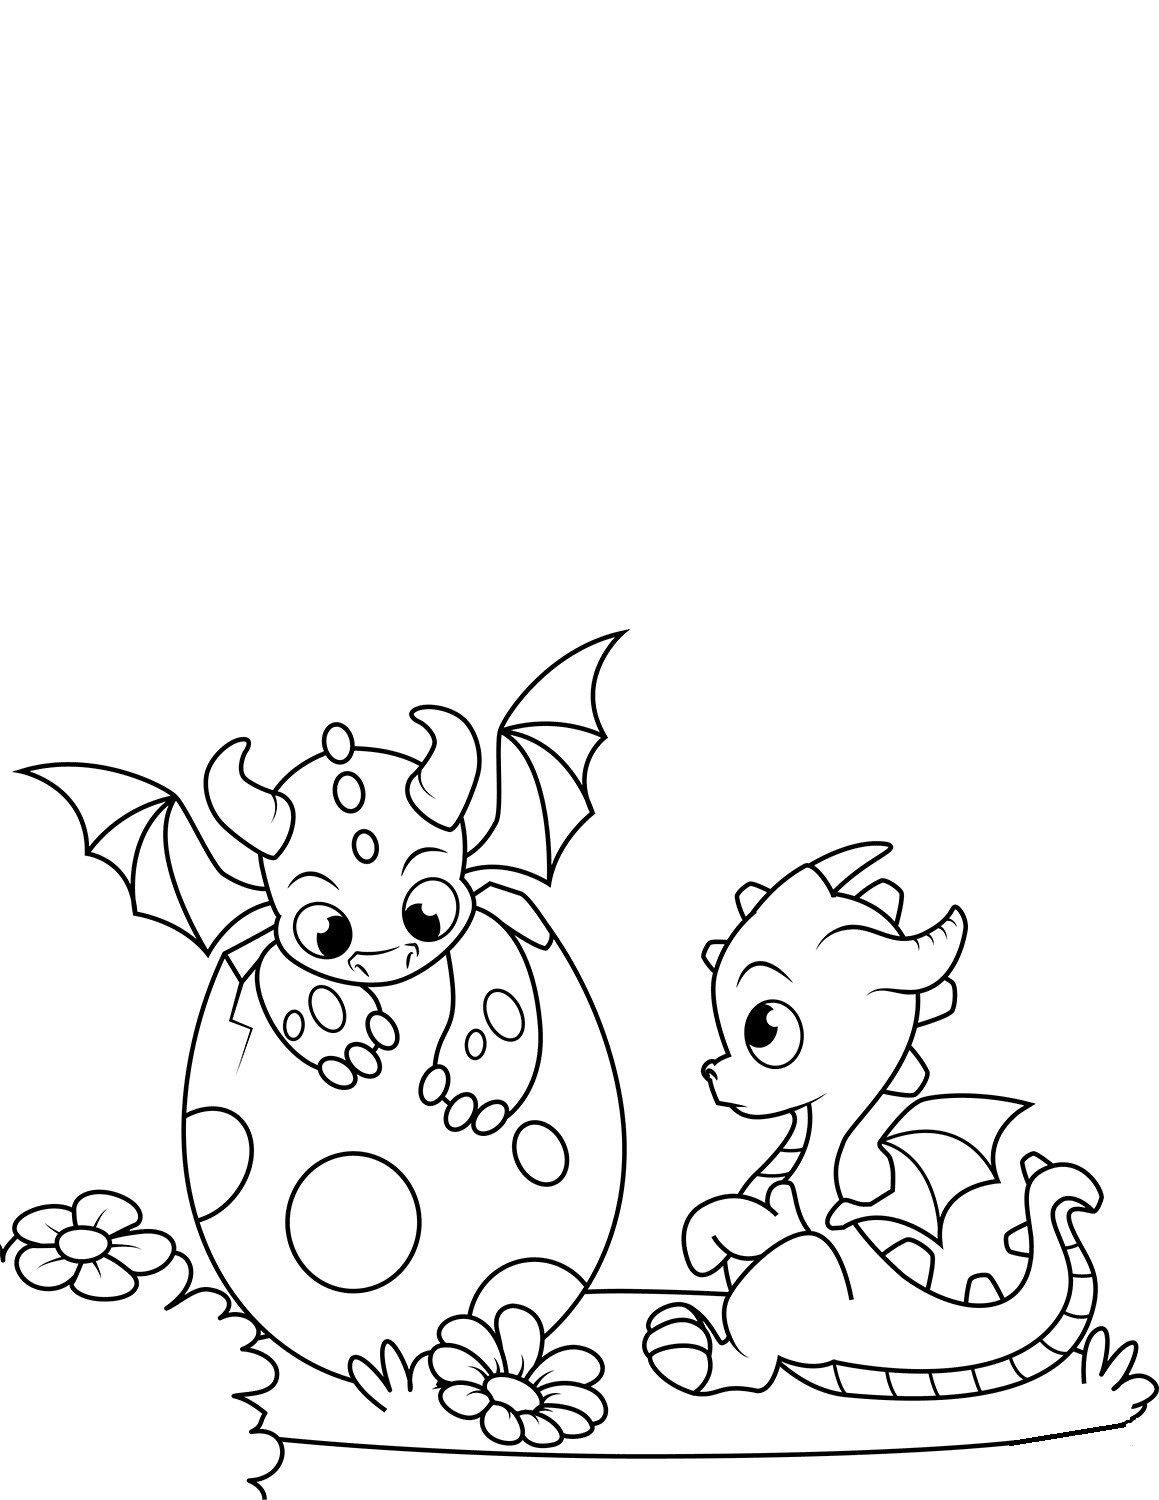 Cute Baby Dragon Coloring Pages For Children Printable Shelter